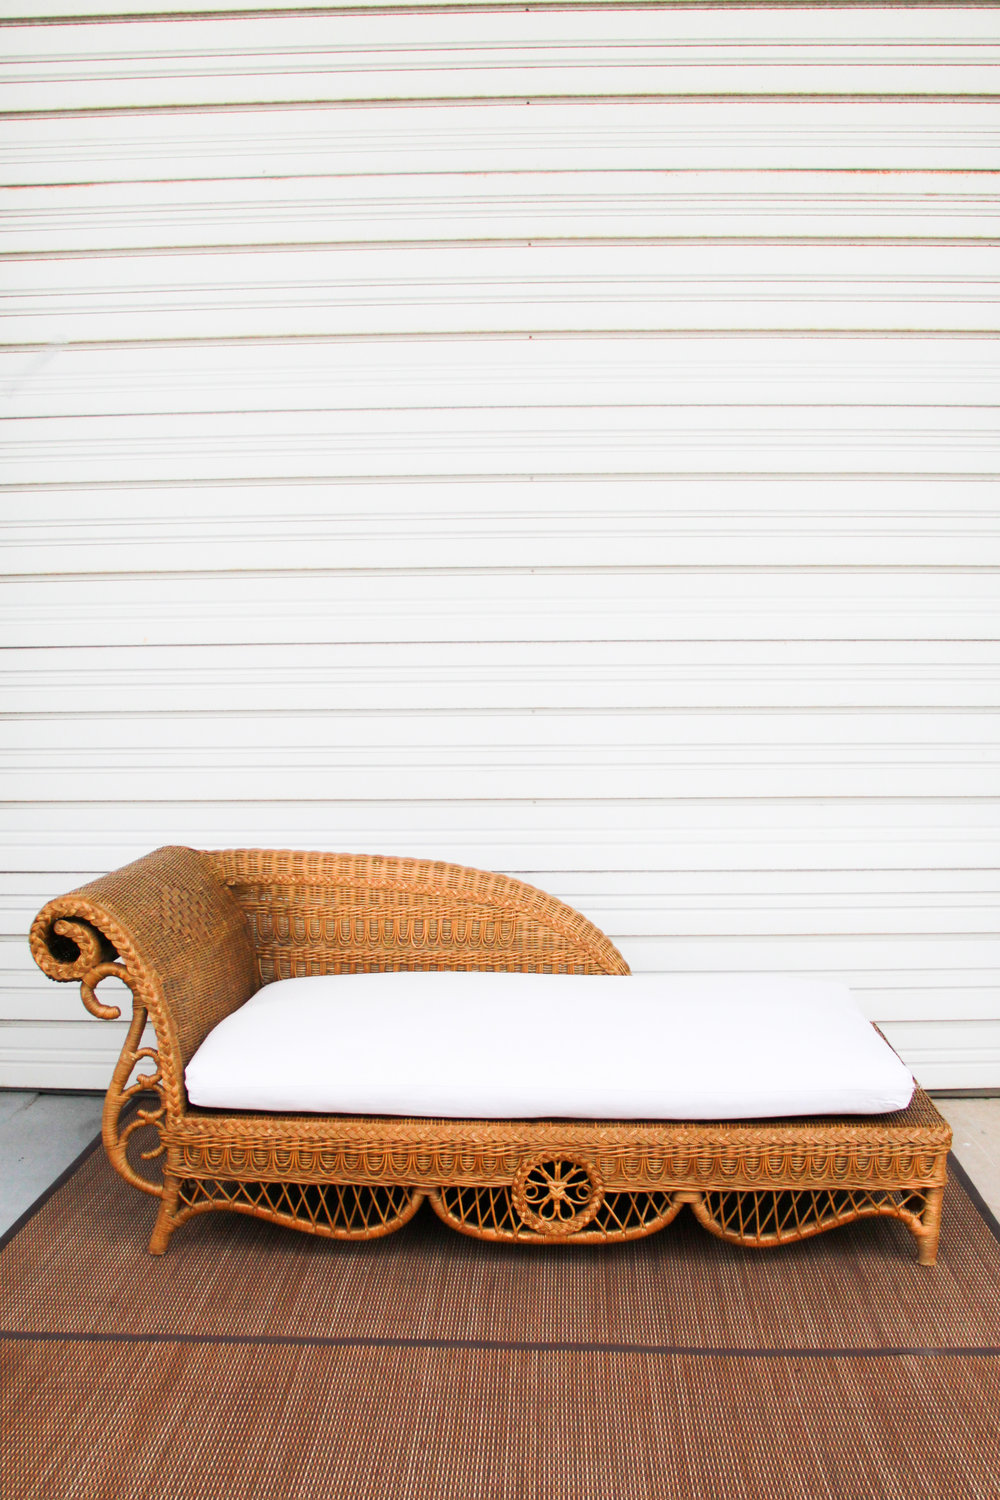 R.L Loungers (2)